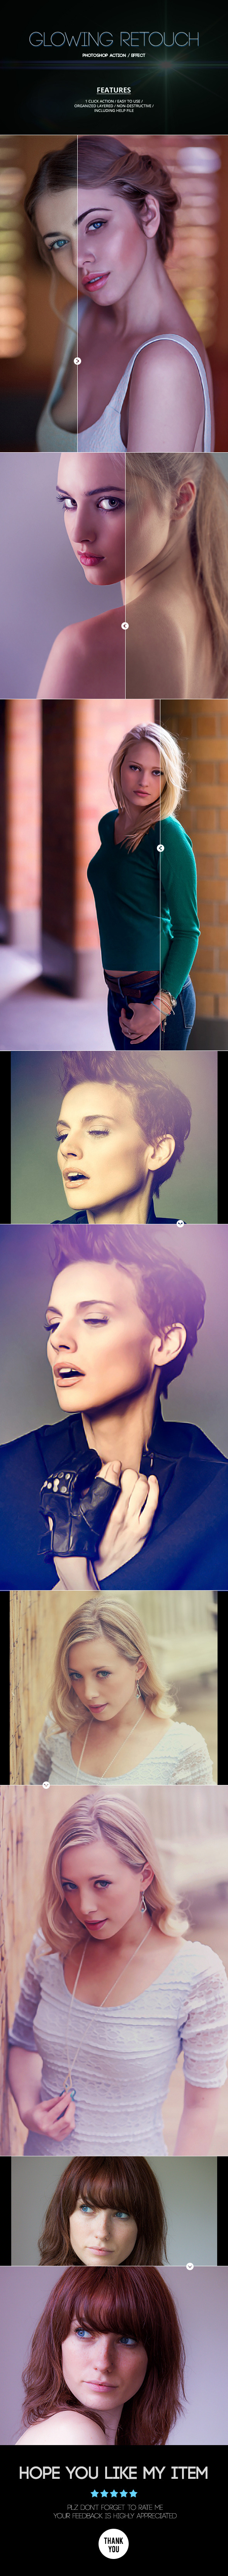 Glowing Retouch - Photo Effects Actions